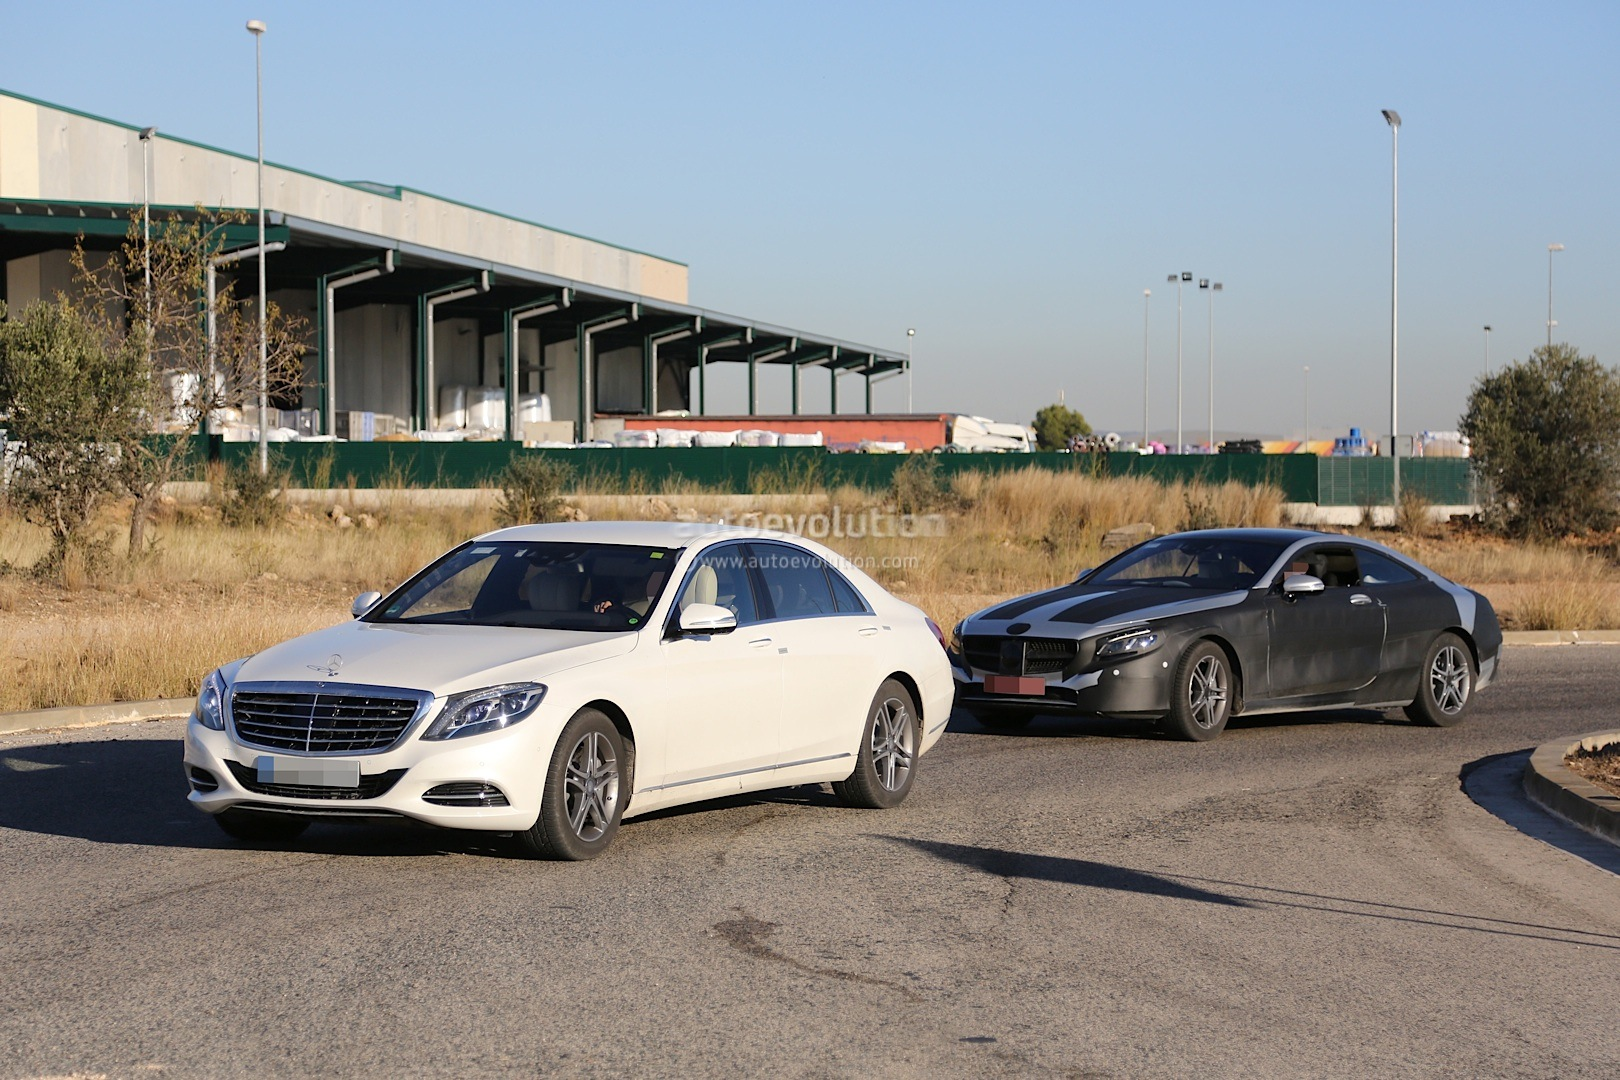 2015 mercedes-benz s-class coupe (c217) spied with less camo